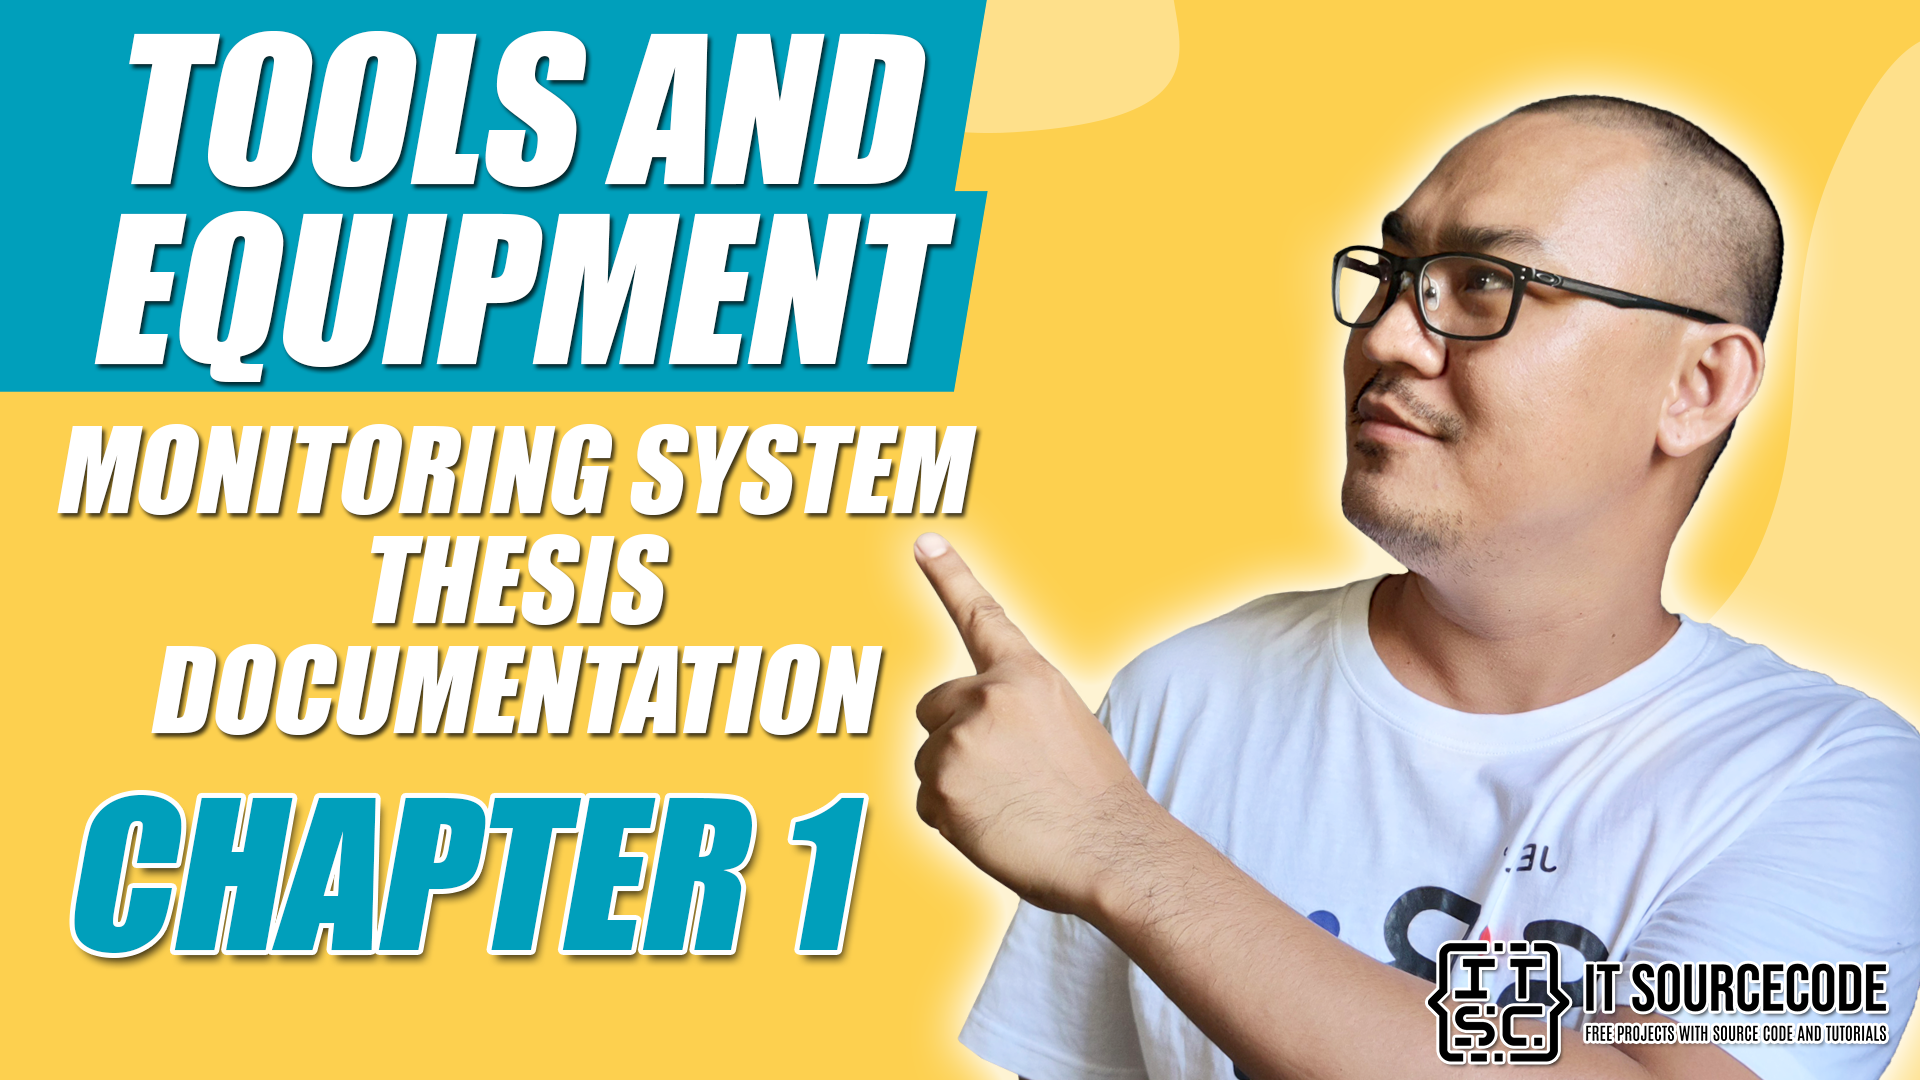 Tools and Equipment Monitoring System Chapter 1